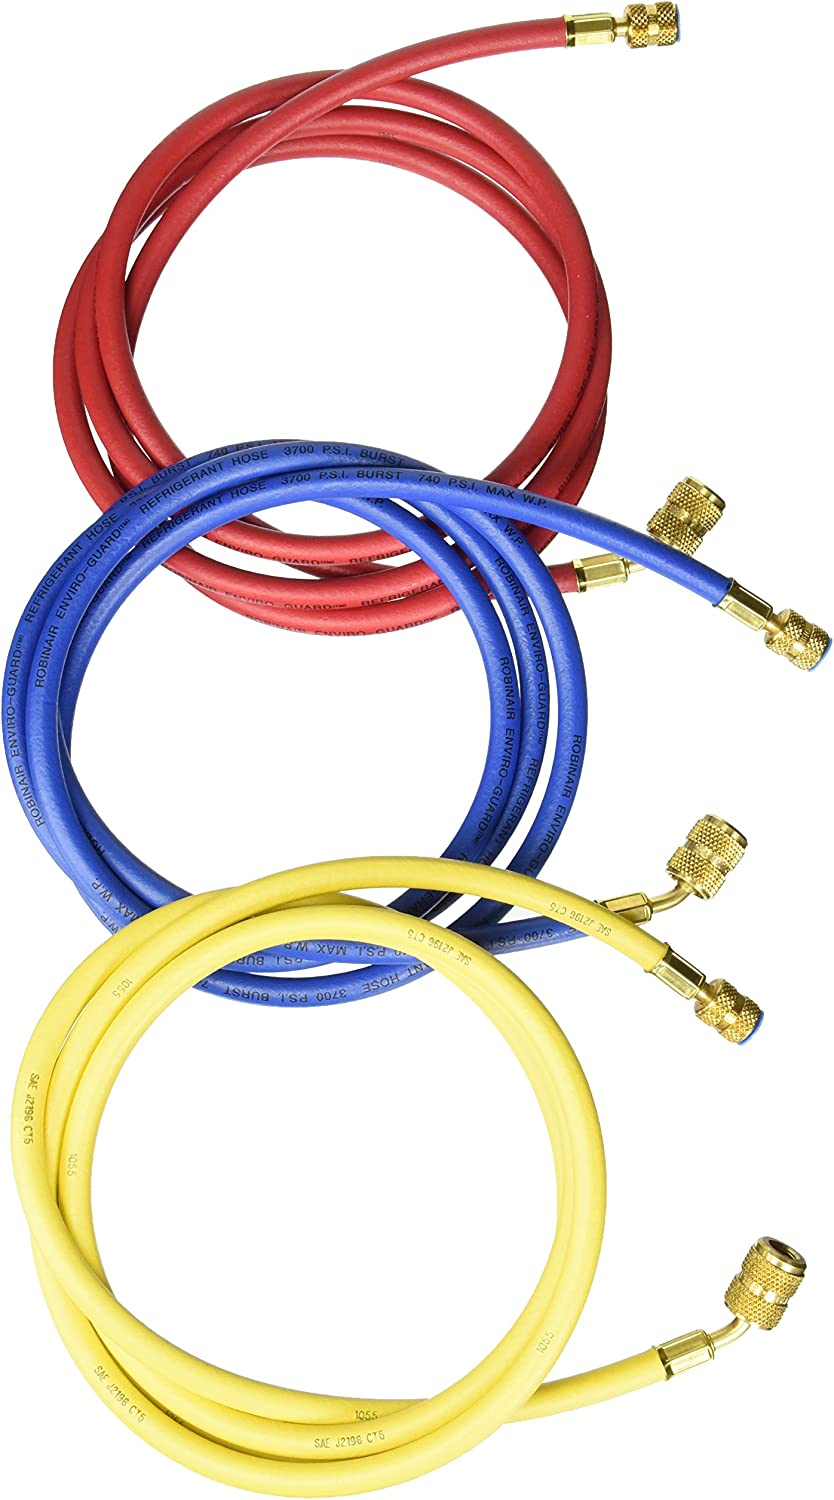 Robinair 69096A Enviro-Guard 96 Hose with 45 Degree Quick Seal Fittings, Set of 3